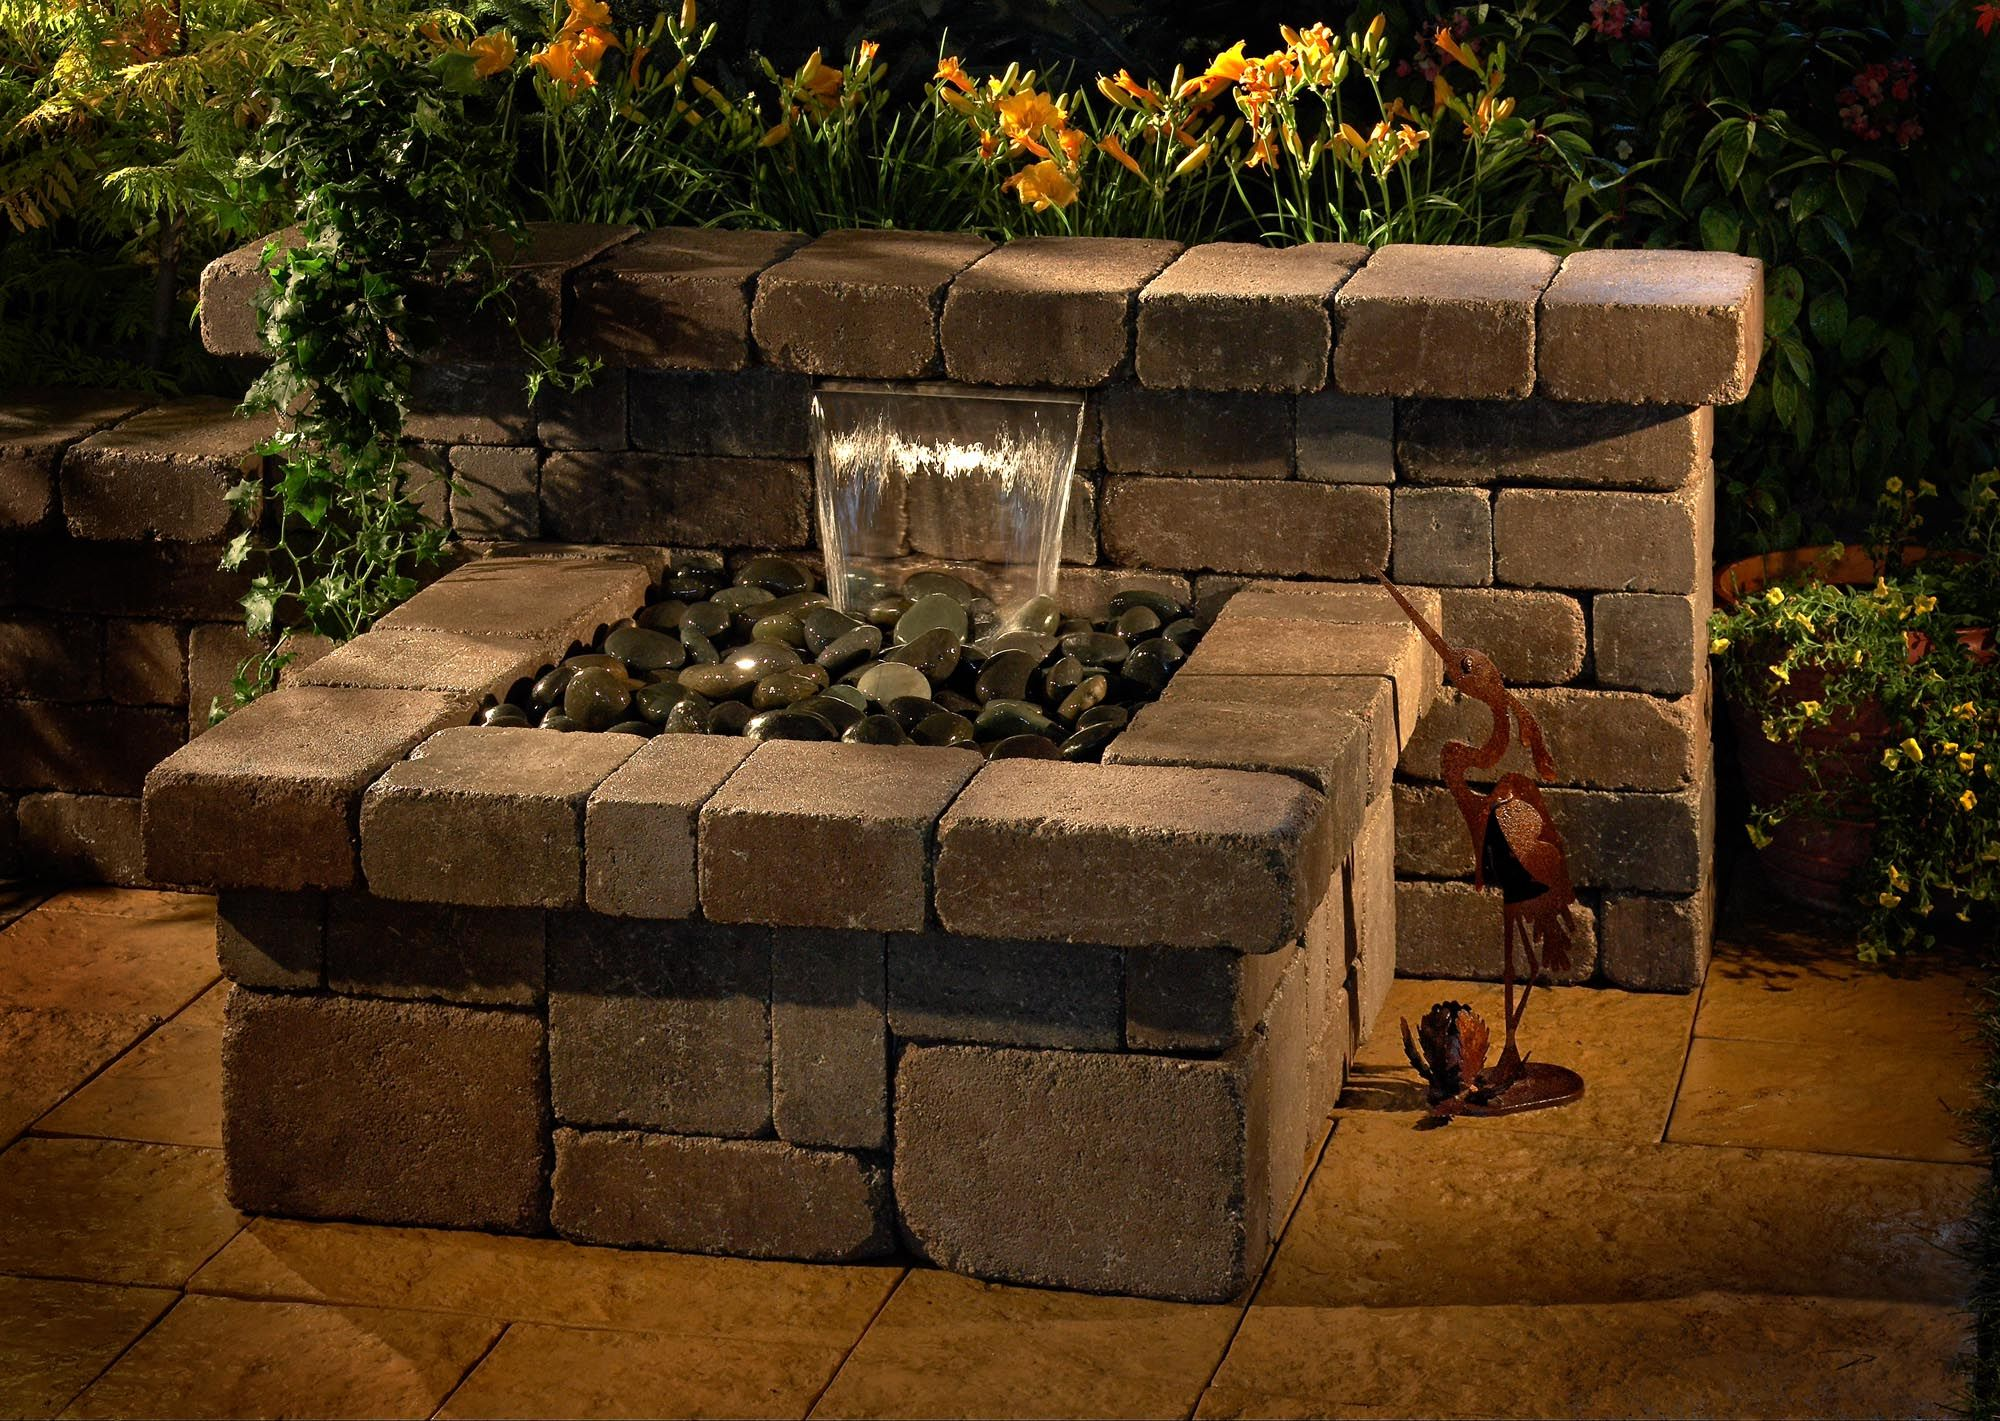 Rockwood Compact Water Feature Kit Dimensions 64 W X 40